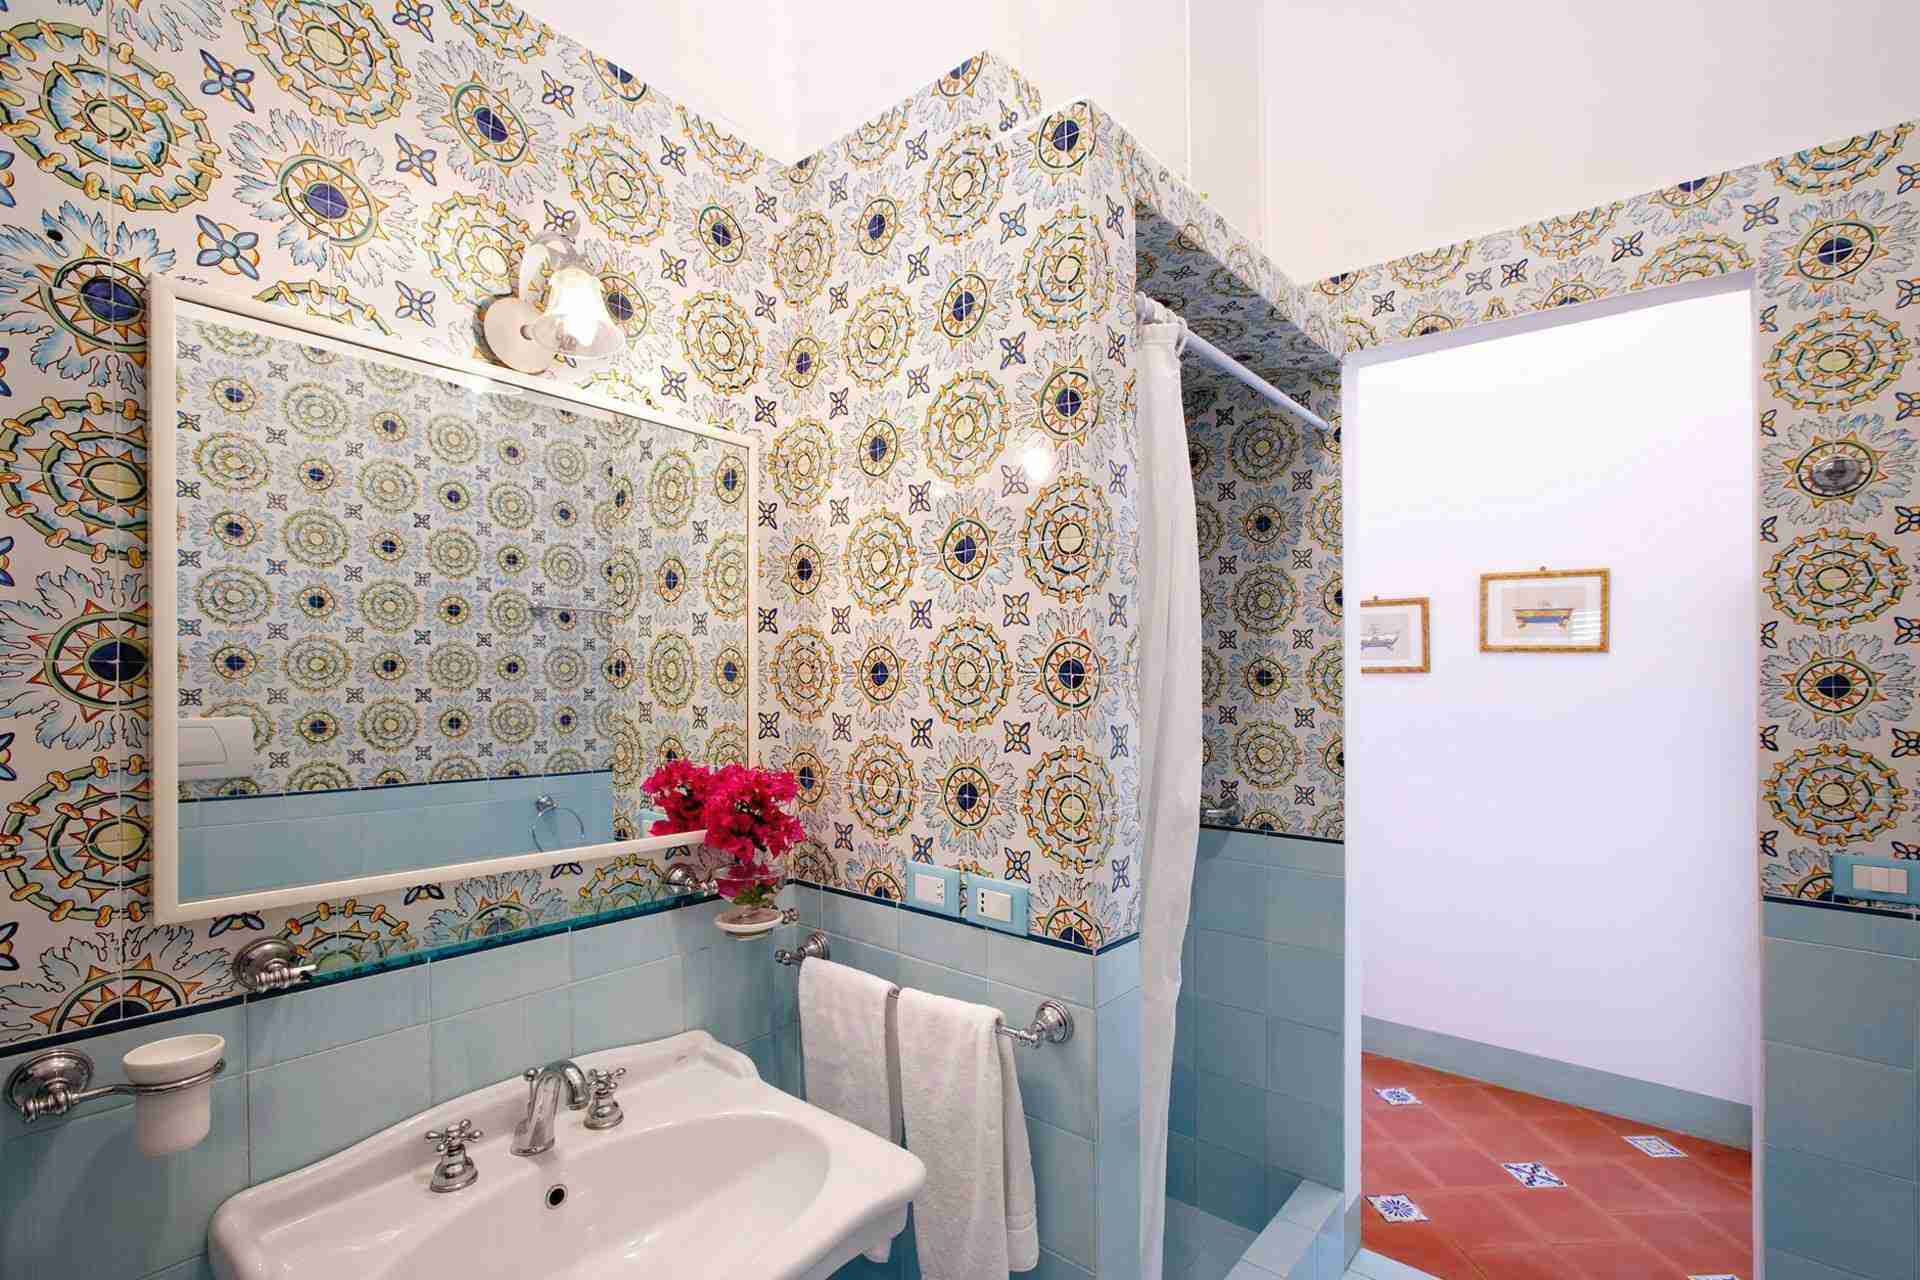 23 Positano bathroom